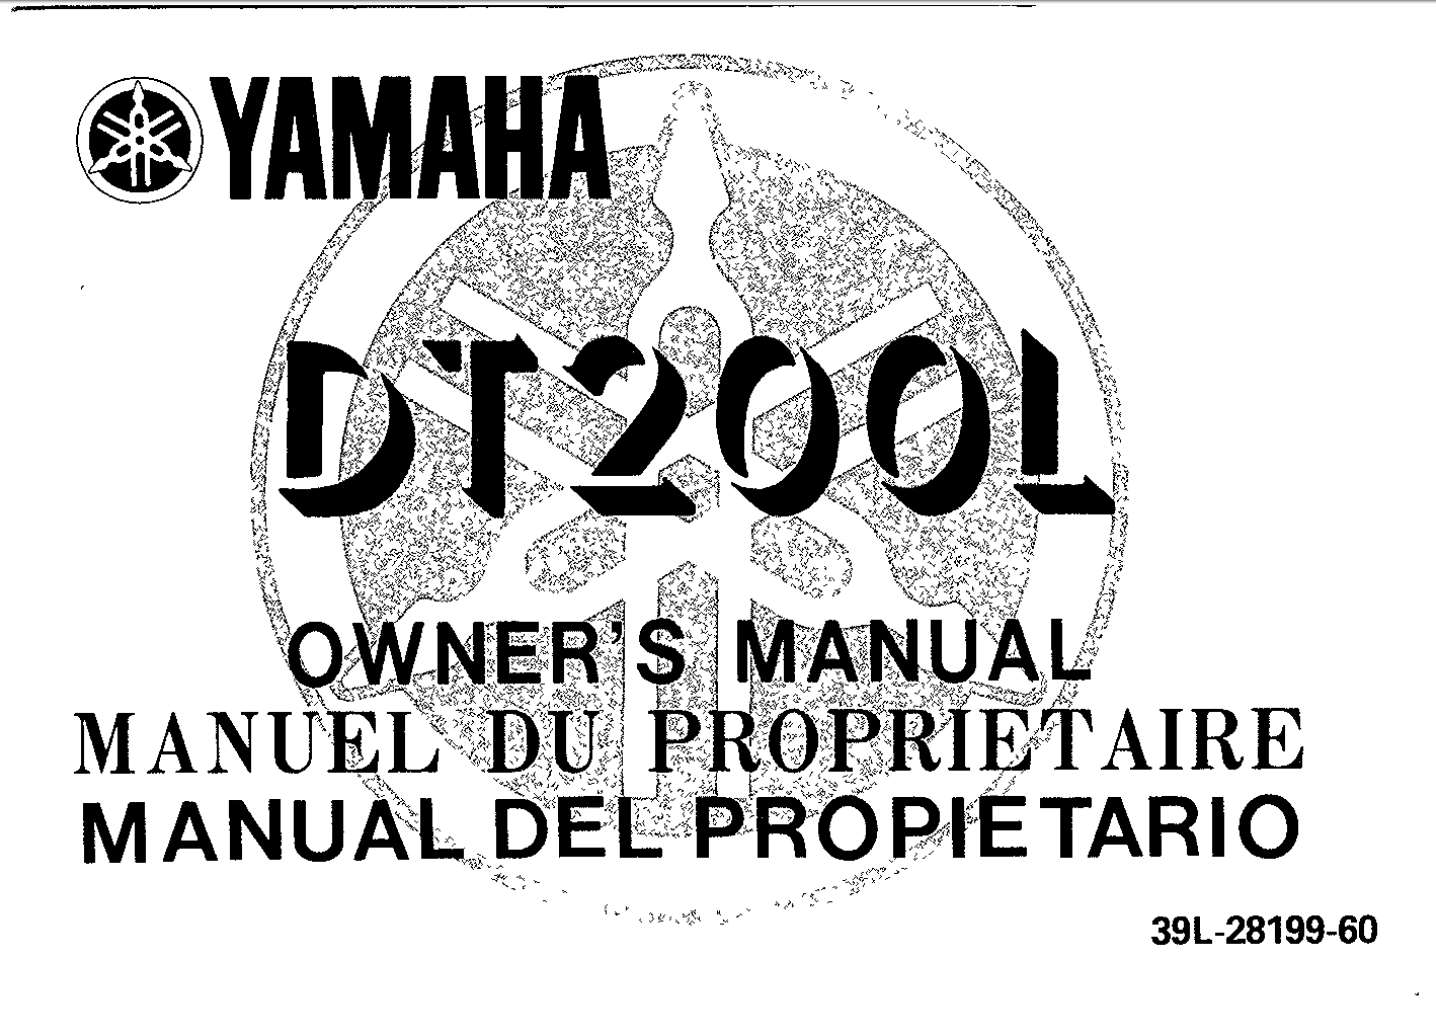 Yamaha DT200 L 1985 Owner's Manual